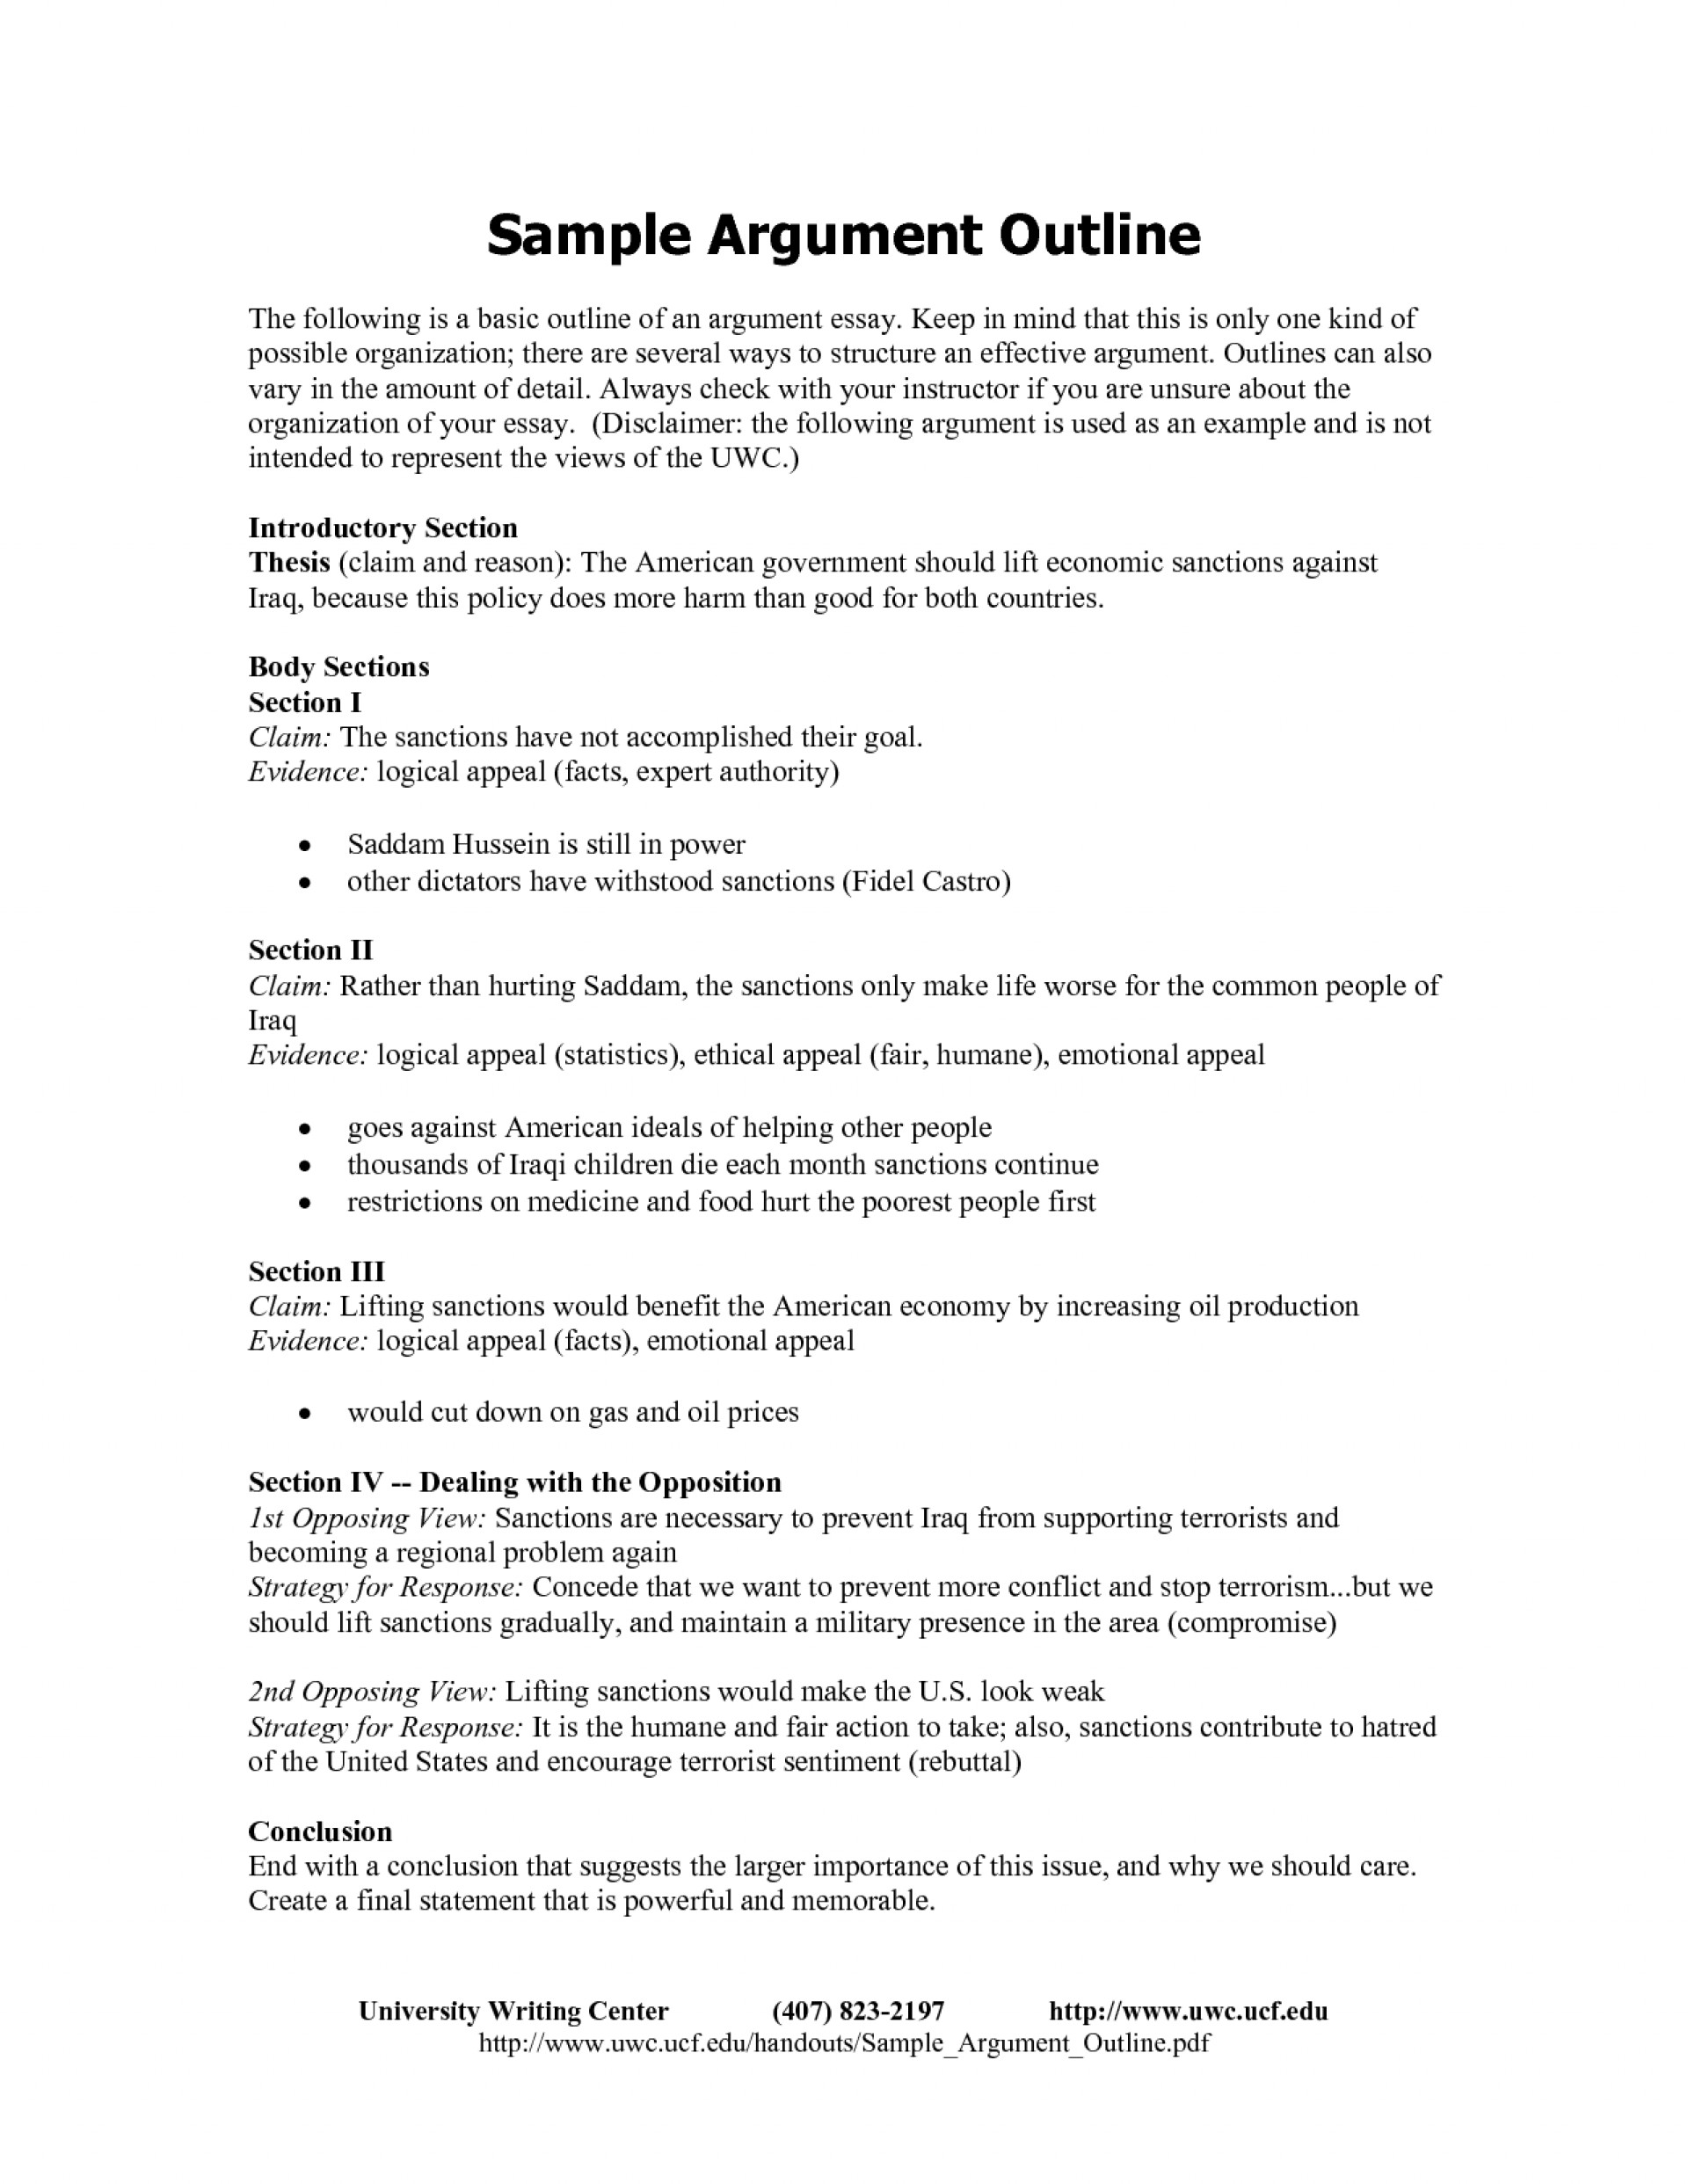 007 Example Argumentativey Outline Onneto Format For Ironviper Co How To Write An Step By Pdf Start Conclusion Thesis Statement Off Body Paragraph Ap Lang Introduction Argument Remarkable Essay Sample 5 Argumentative Template Blank 1920